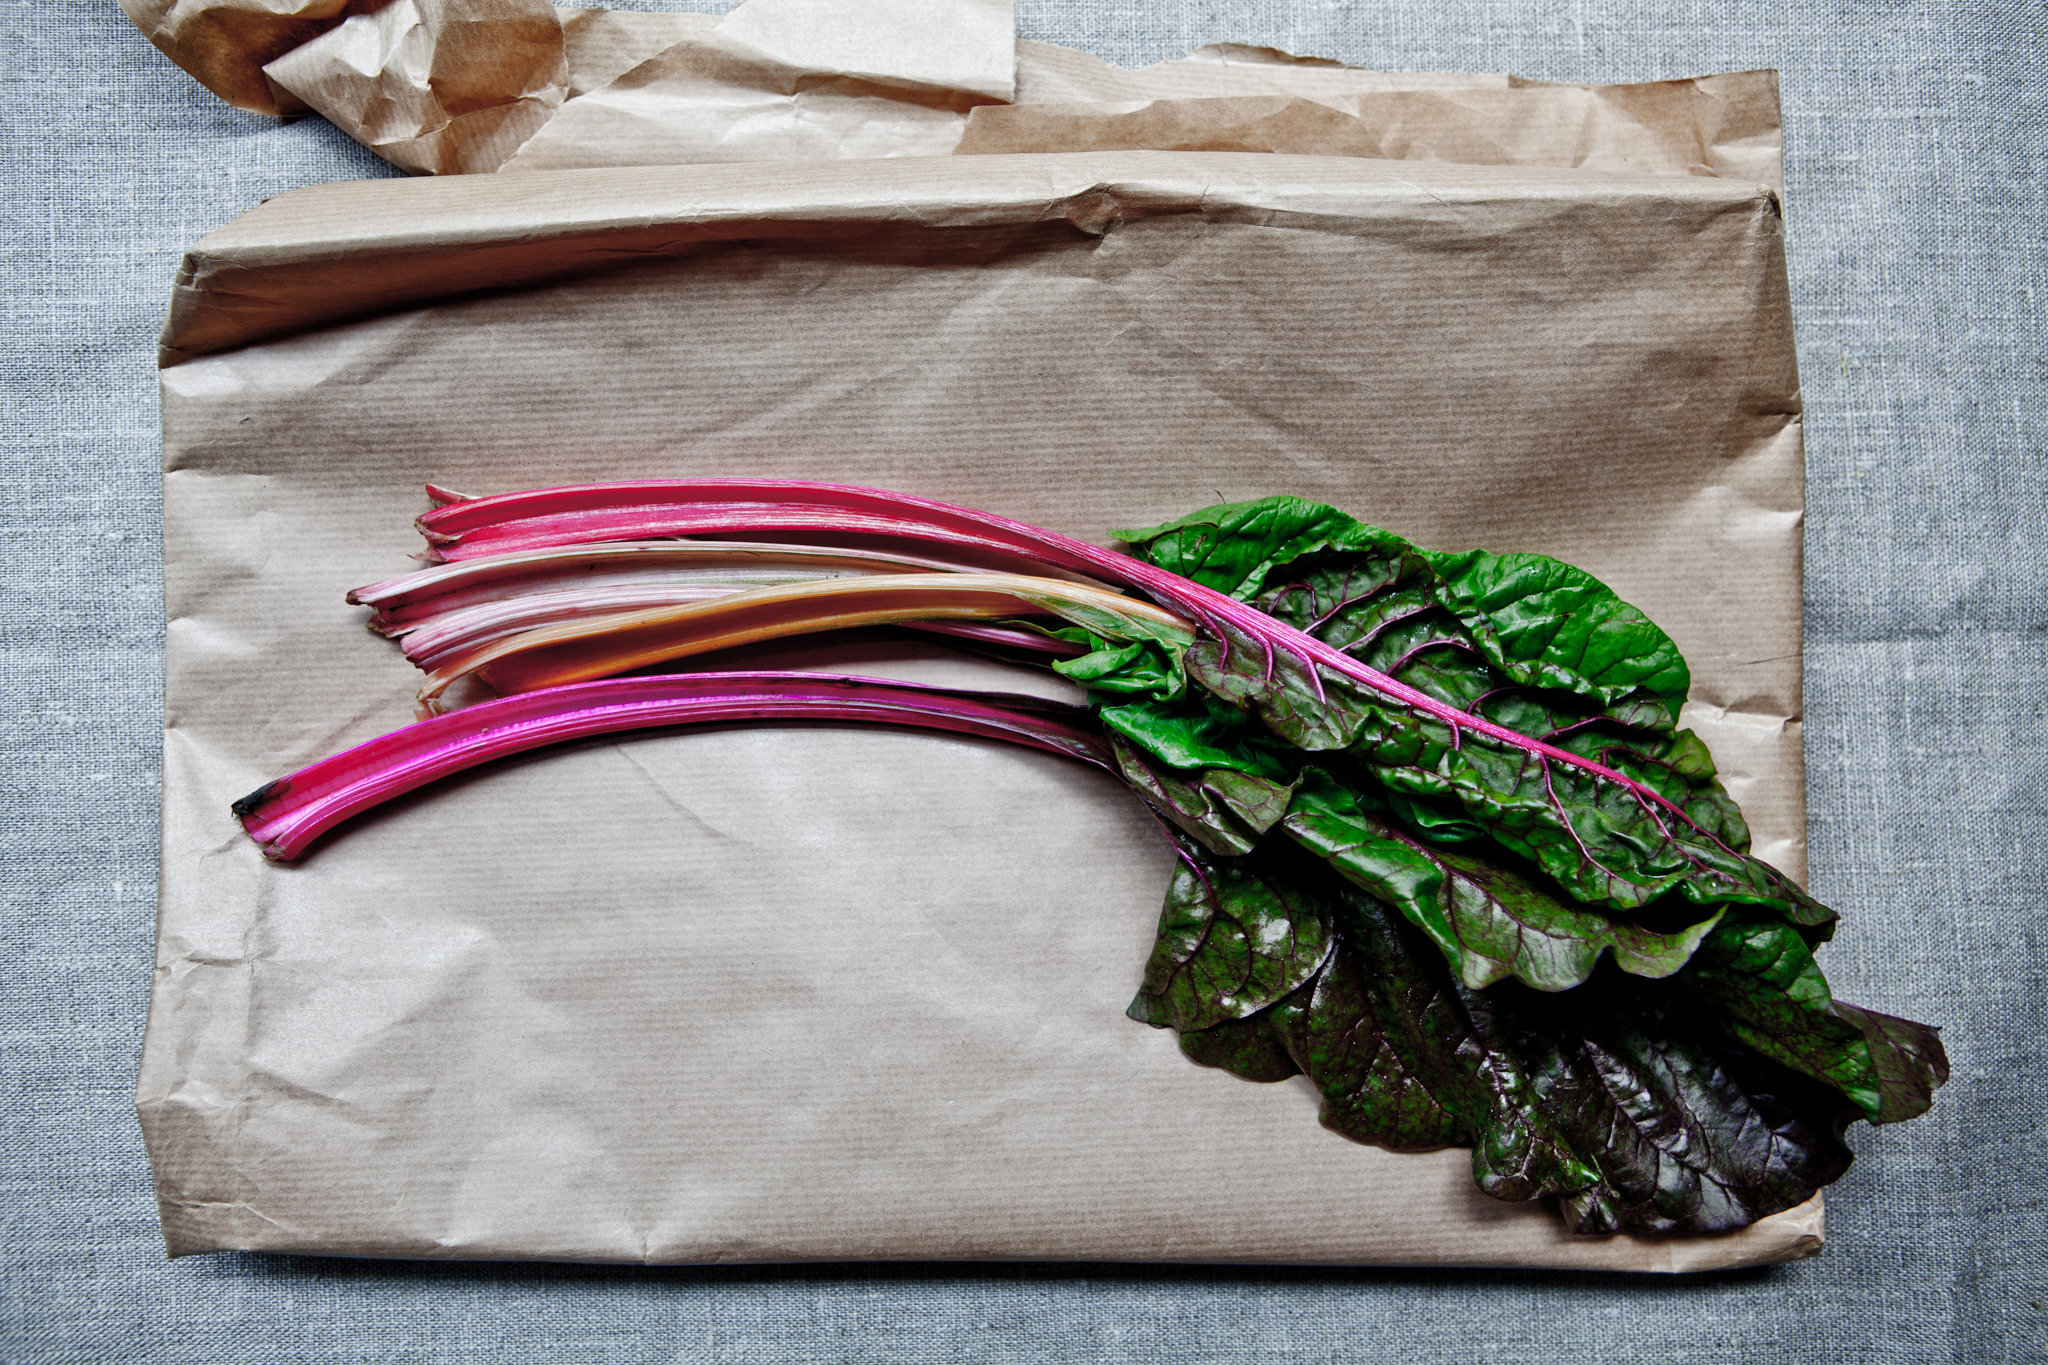 productshoot_02.jpg